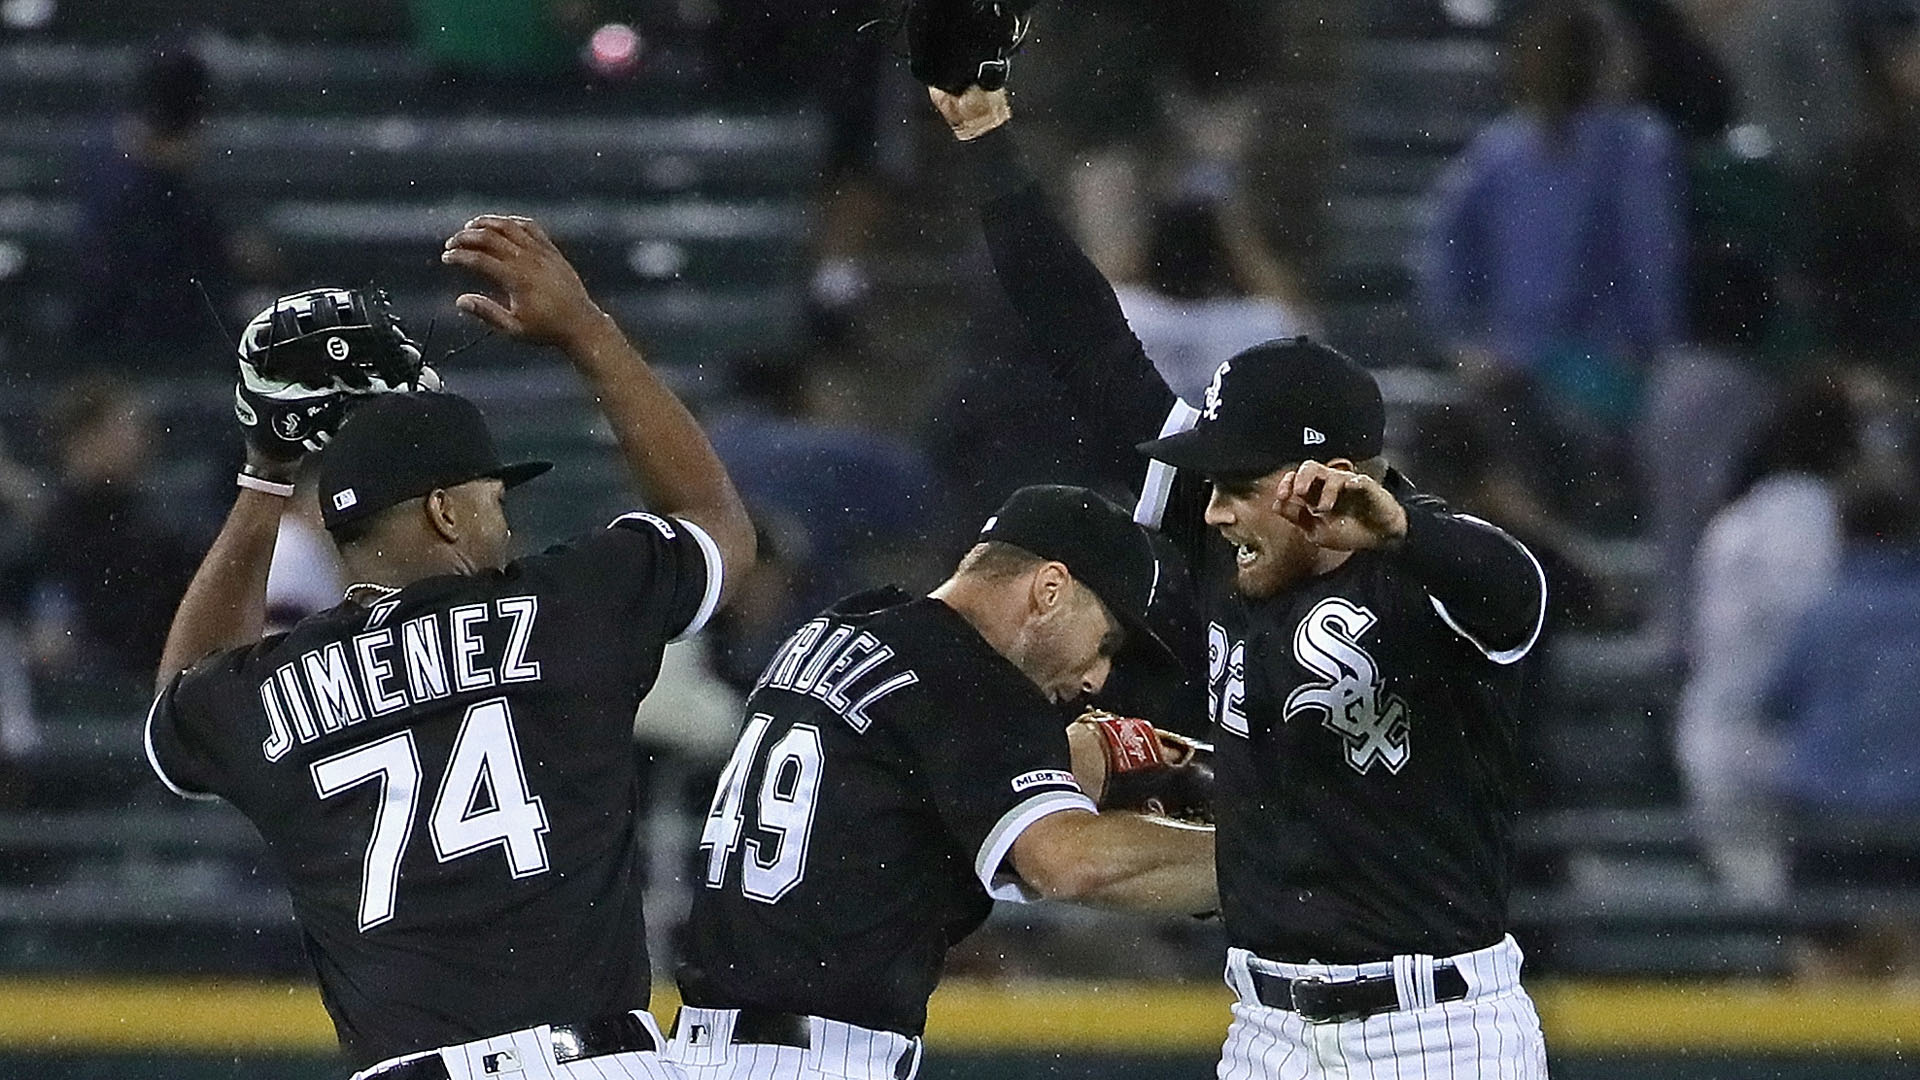 MLB trade rumors: White Sox may want to add controllable starter